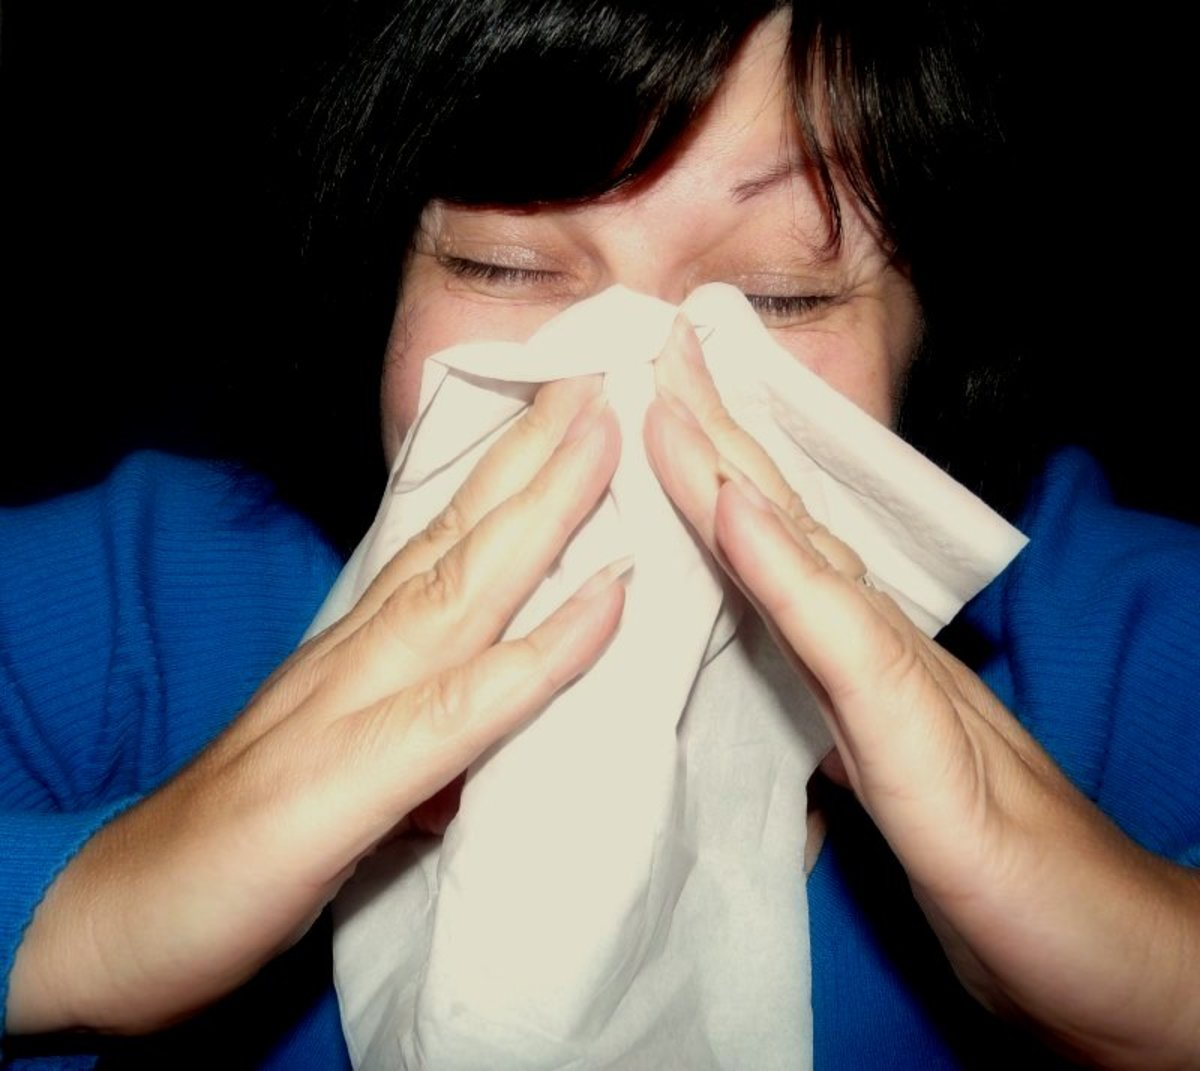 How I Cure My Flu in One Day Using Natural Remedies